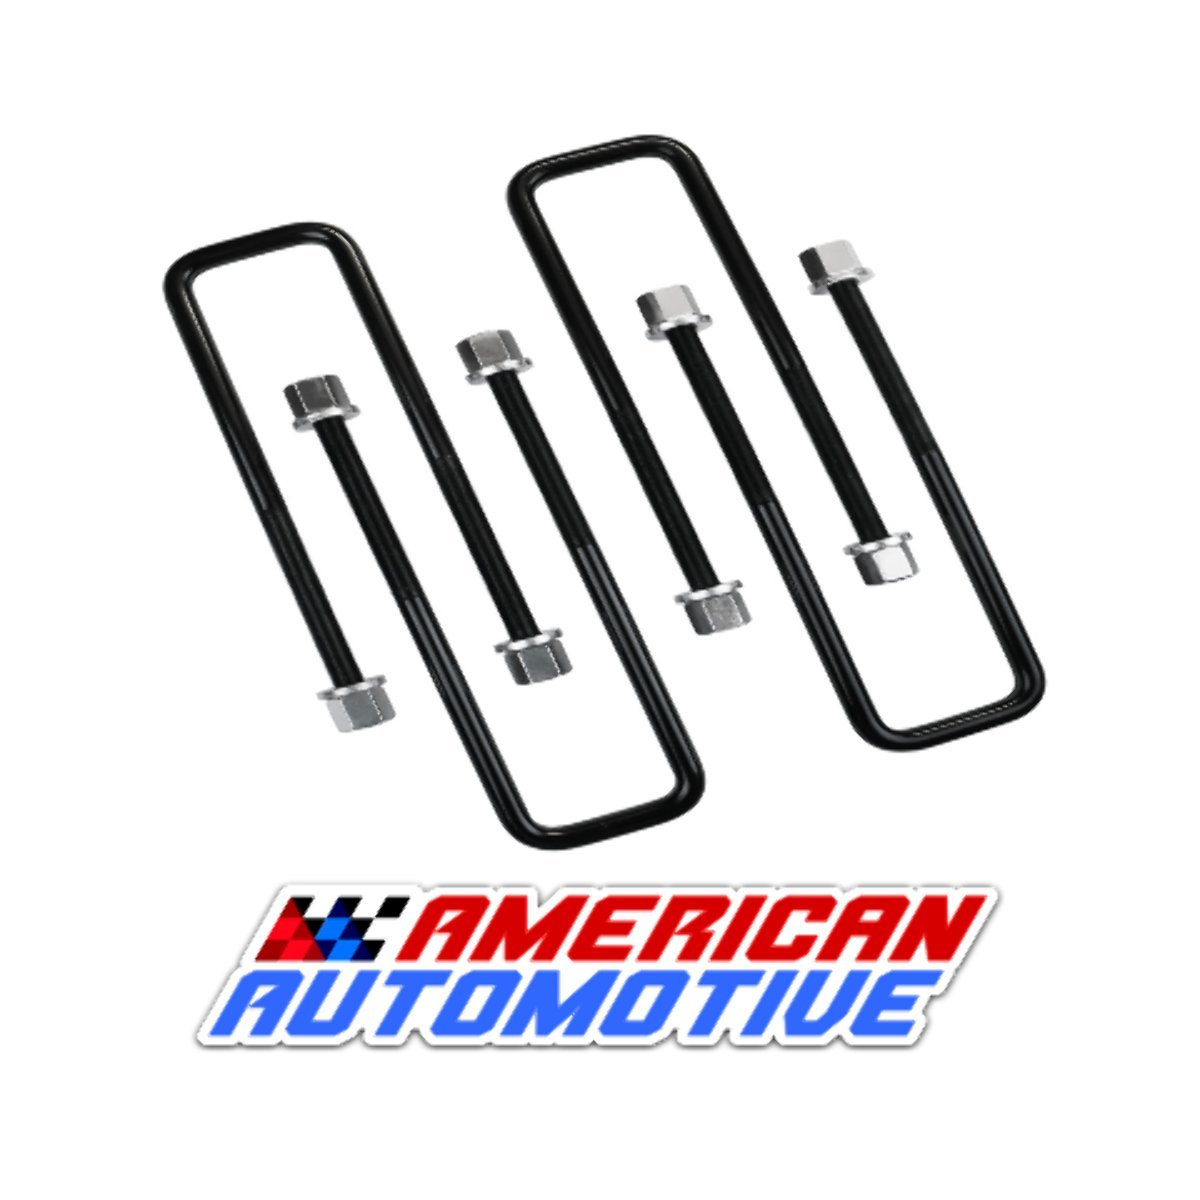 American Automotive UBLT12-388 Square U Bolts 10'' Extra Long Certified Oem Material, Set of 4